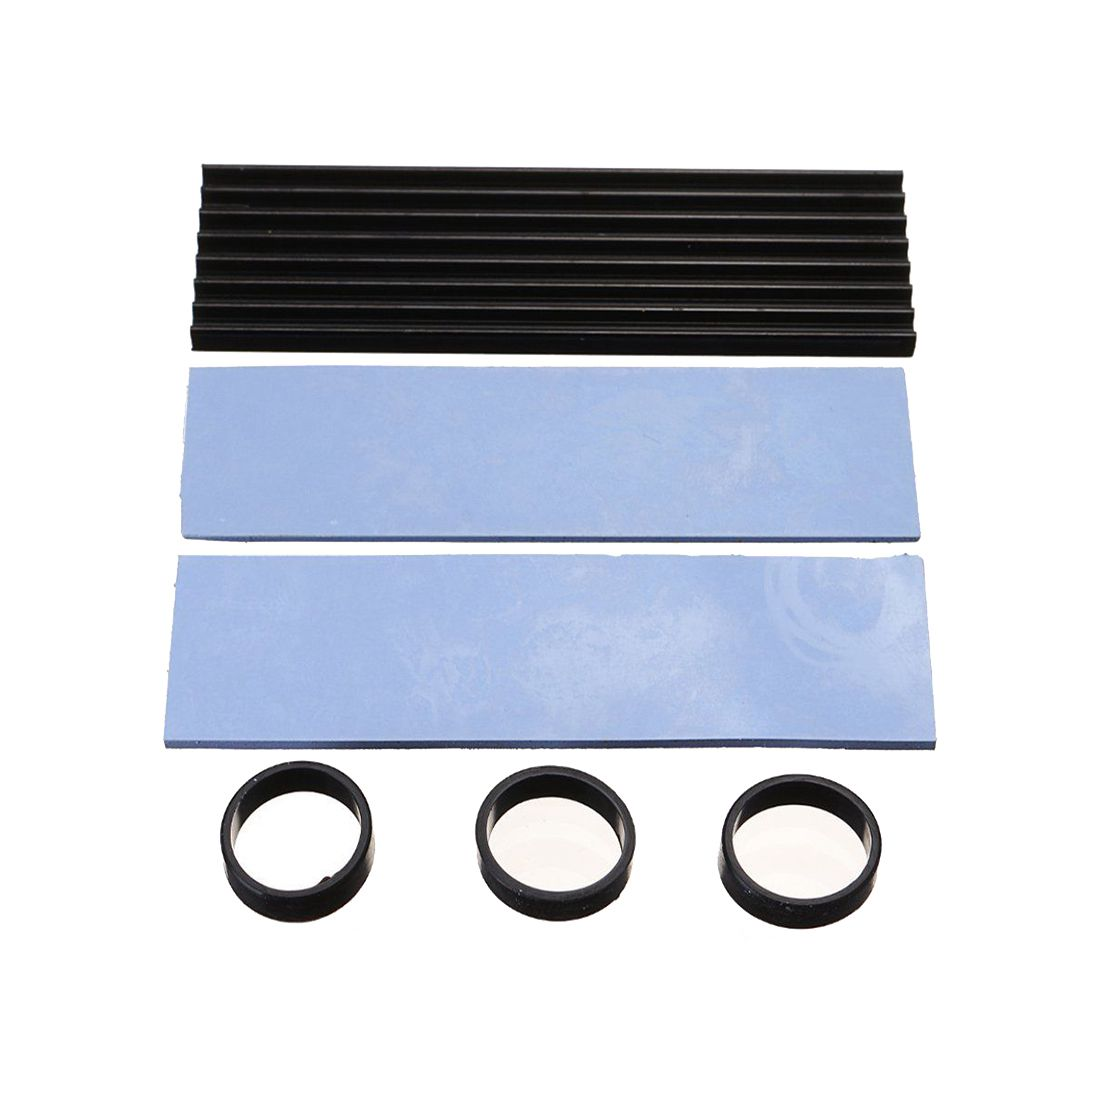 Heat Sink Dissipation Aluminum Cooling For SM961 960PRO M.2 NGFF NVMe 2280 SSD jeyi cooling warship copper m 2 heatsink nvme heat sink ngff m 2 2280 aluminum sheet thermal conductivity silicon wafer cooling